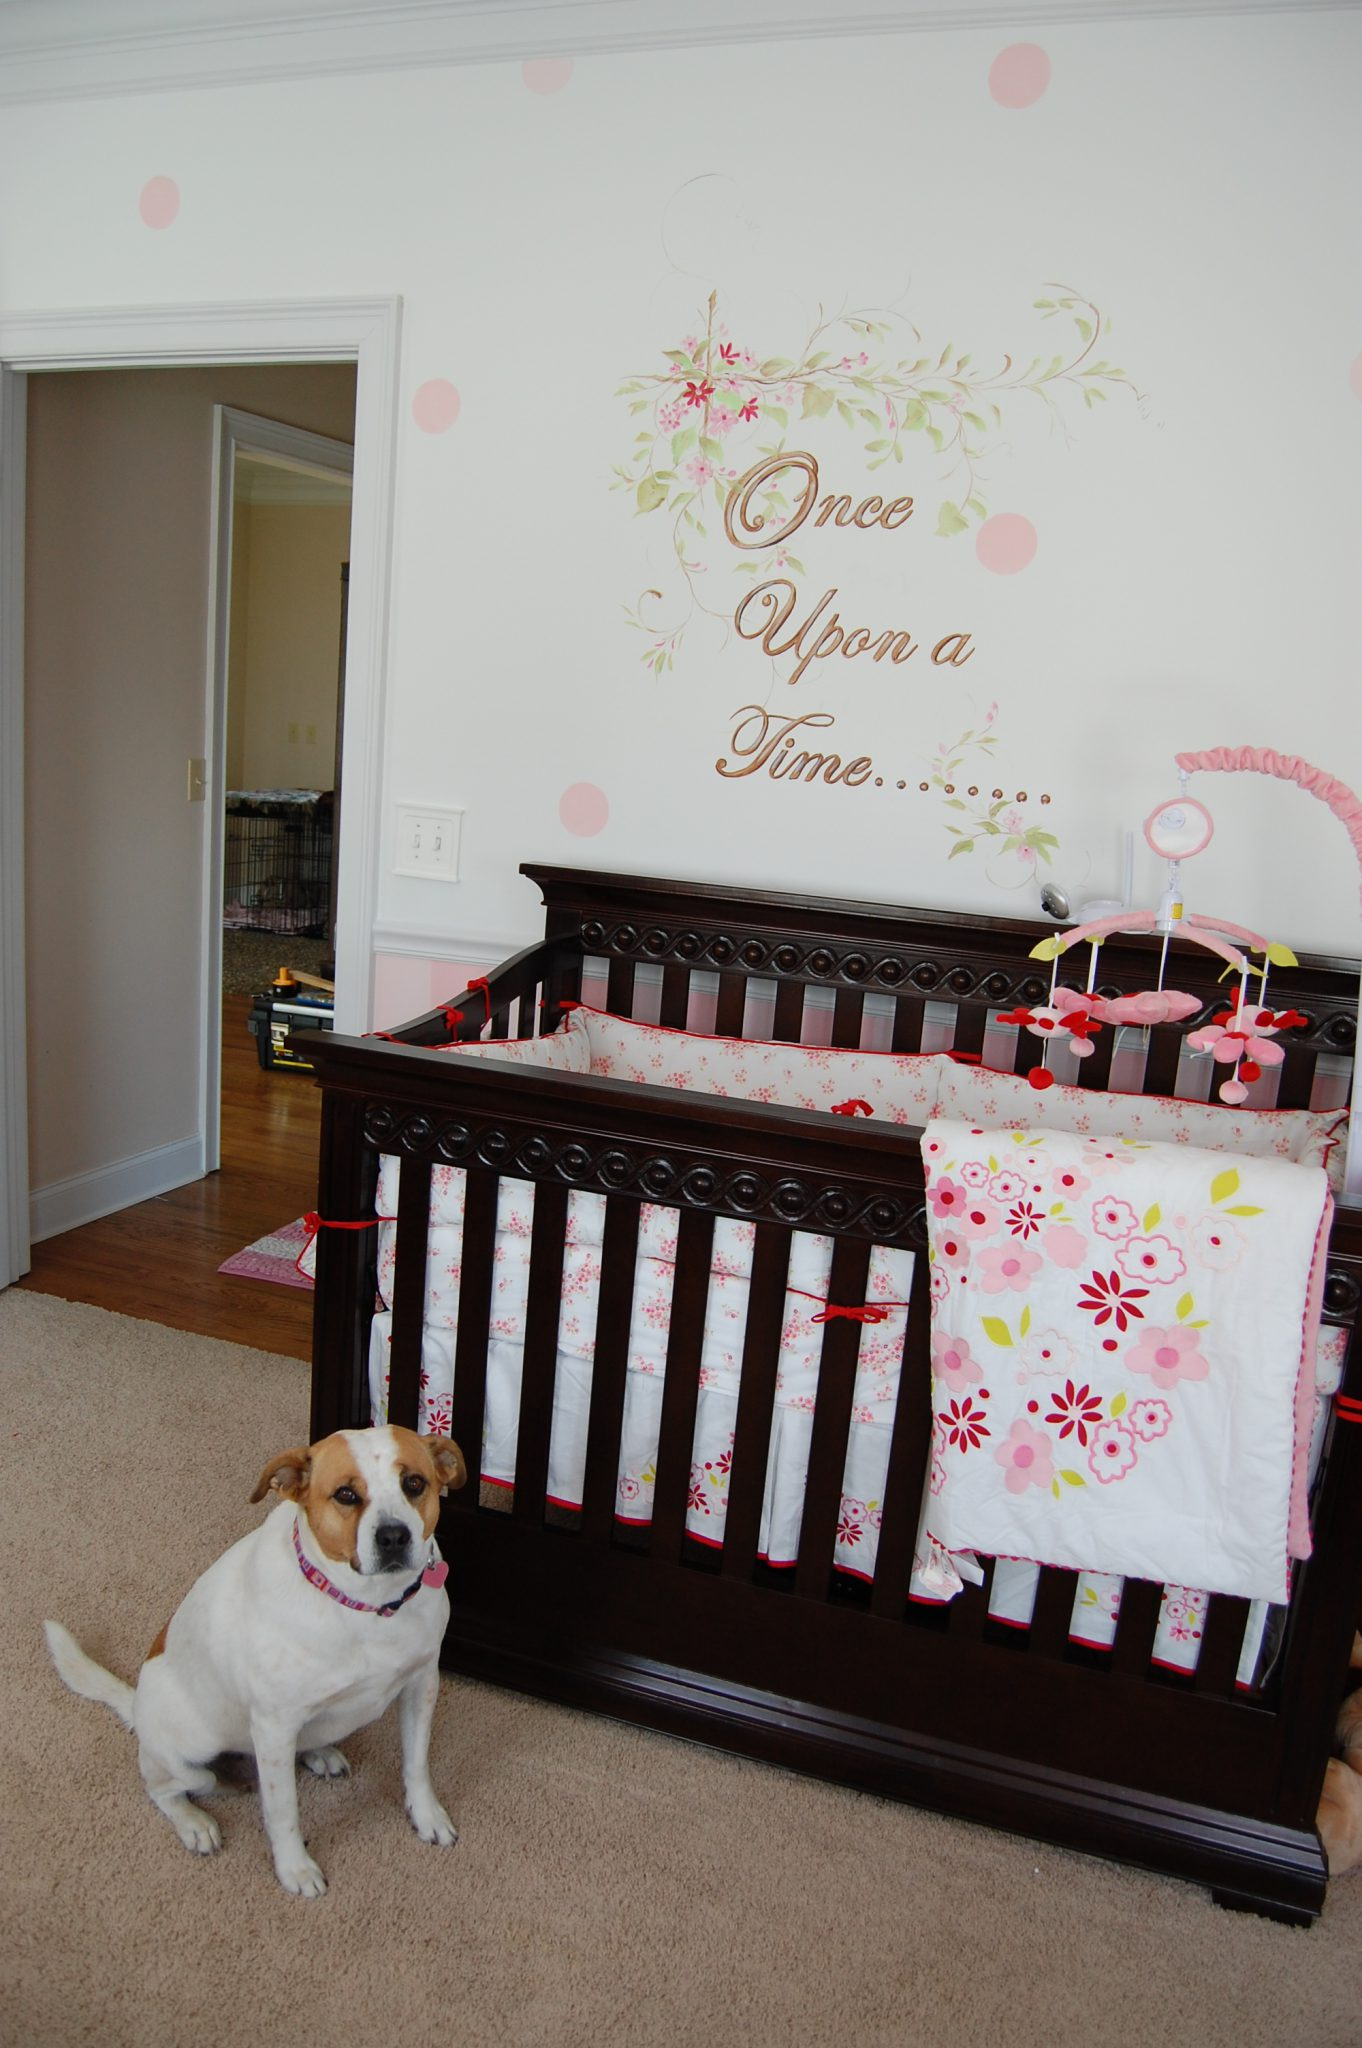 baby furniture winnie set ideas for nursery crib cribs comforter bedd the pooh jcpenney cute disney walmart sears sets bedding classic bed king lion